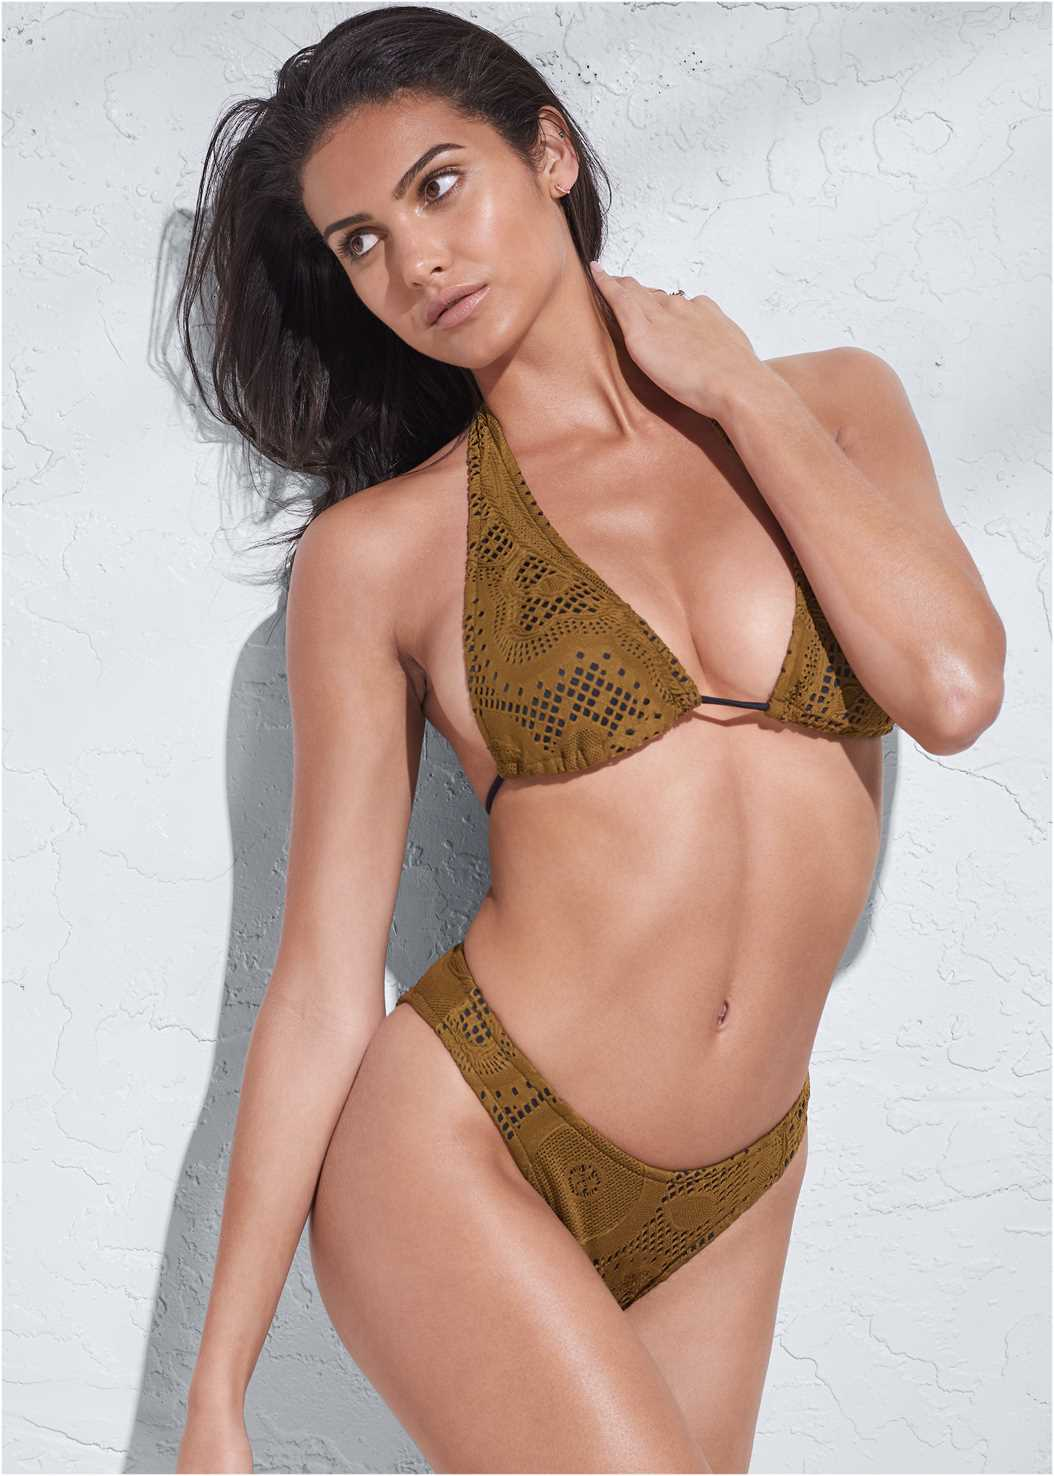 Sports Illustrated Swim™ Long Triangle Top,Sports Illustrated Swim™ High Leg Bottom